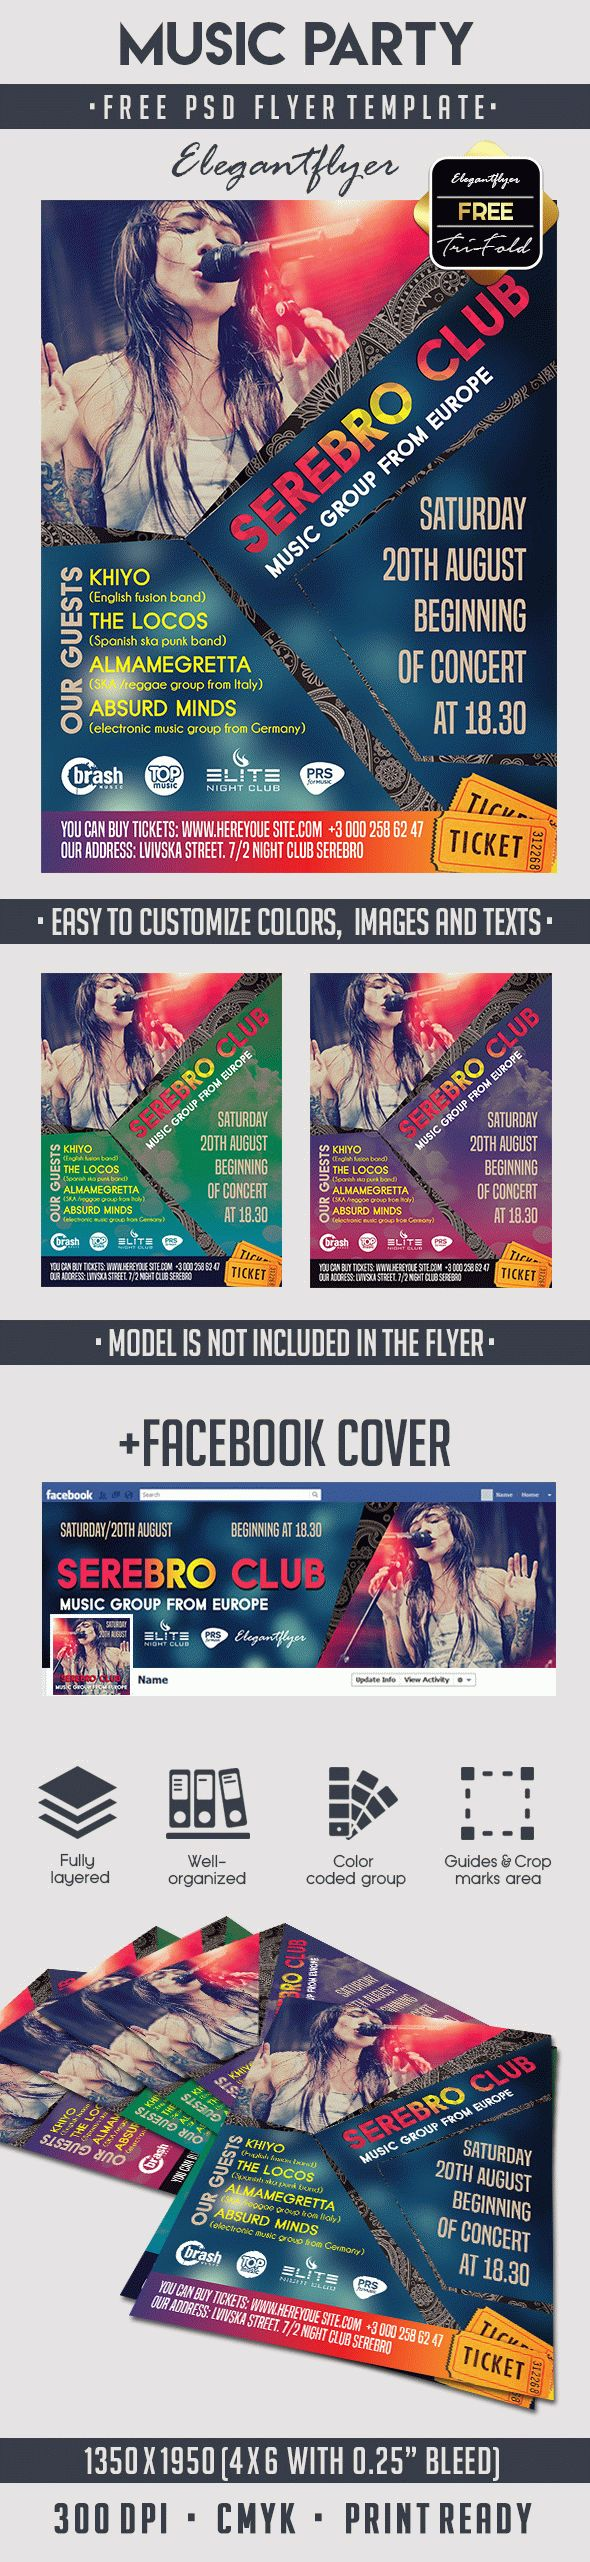 Music Party – Free PSD Flyer Template